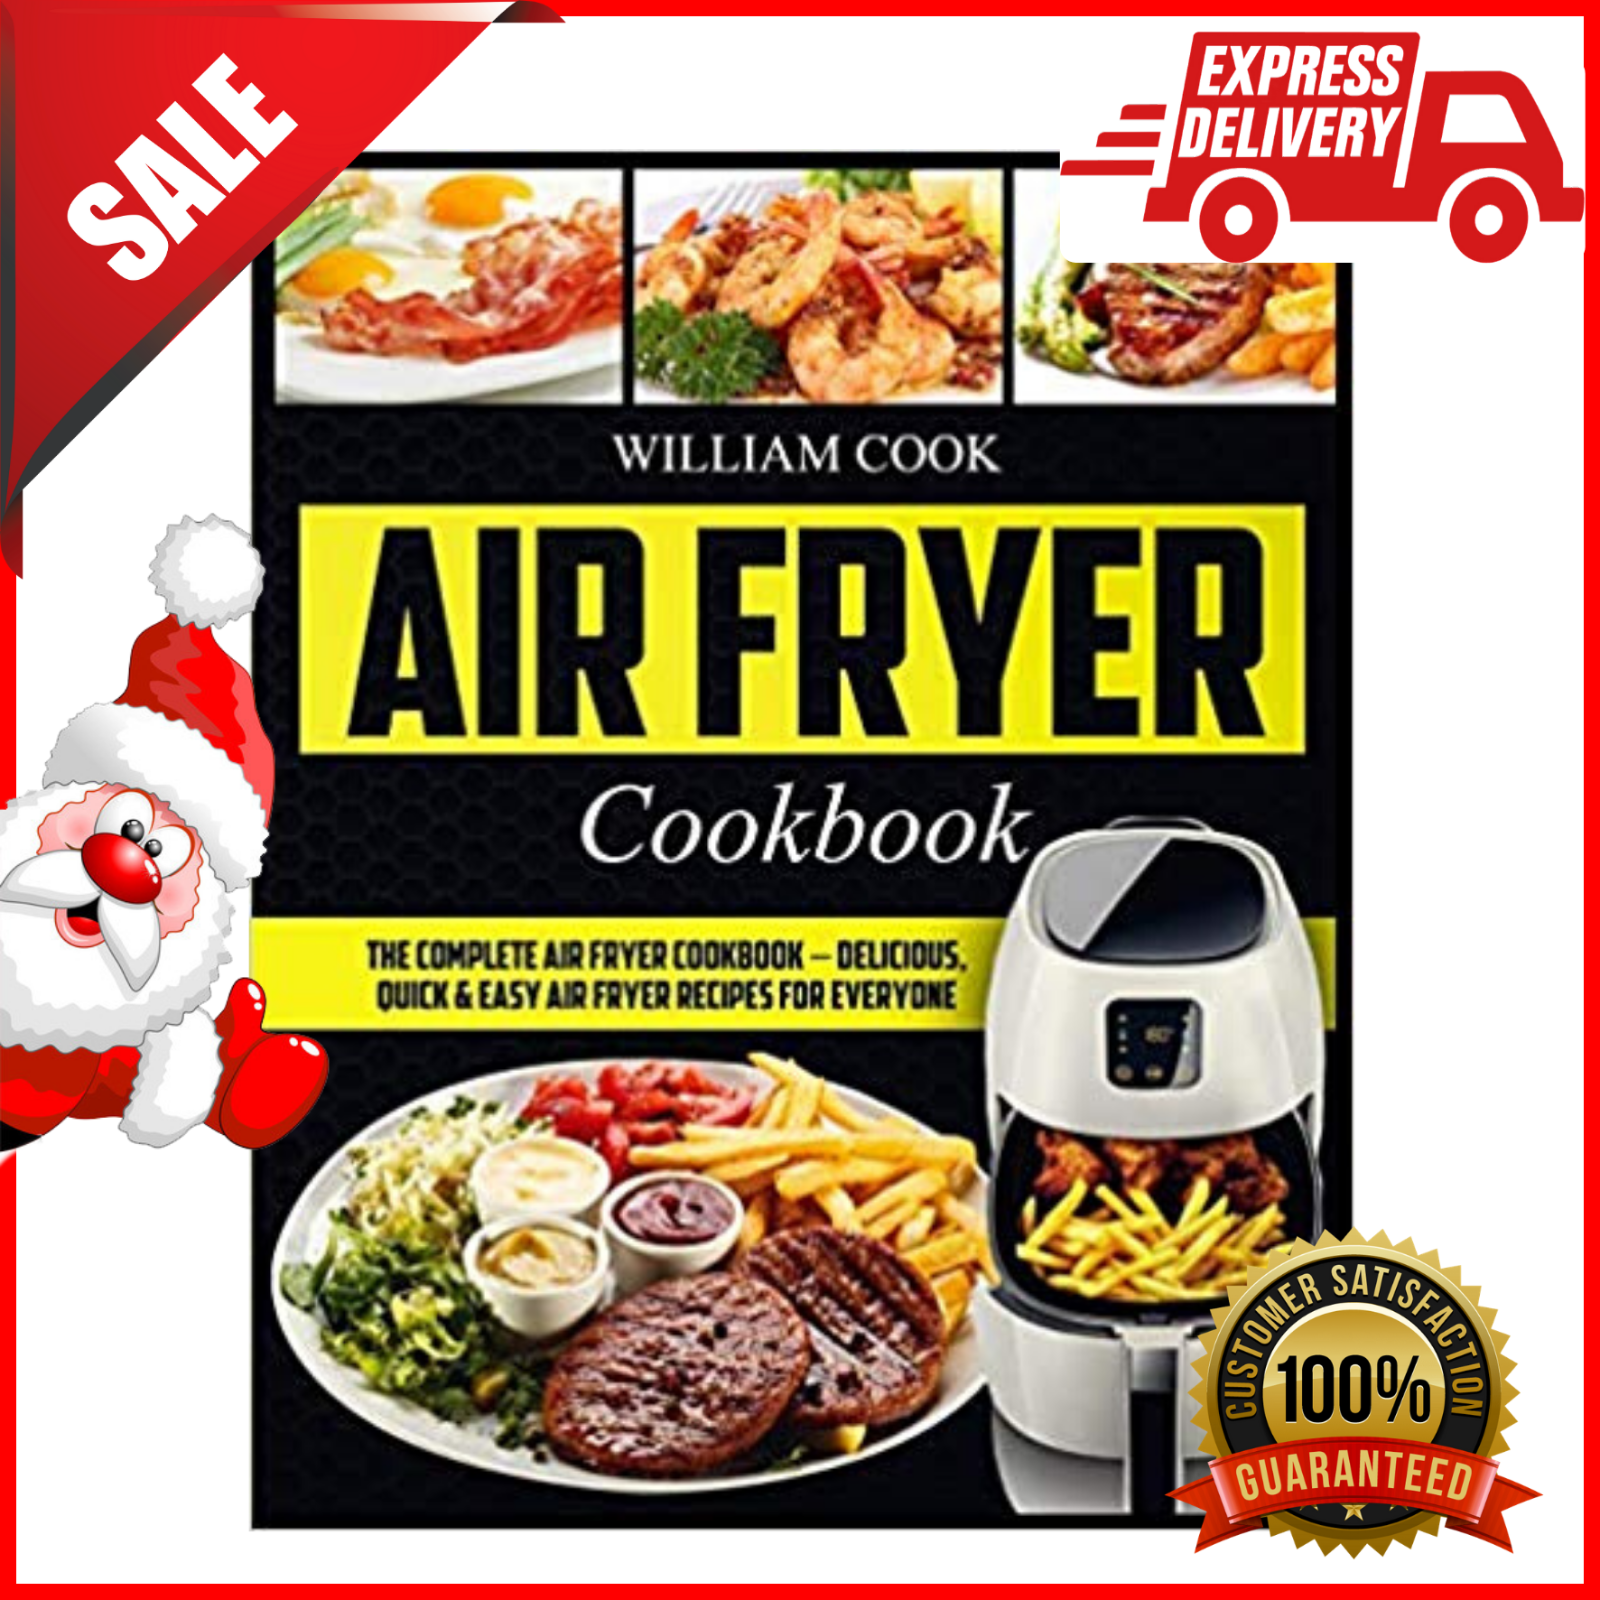 The Complete Air Fryer Cookbook Beginners Easy Quick Healthy Recipes Paperback 4